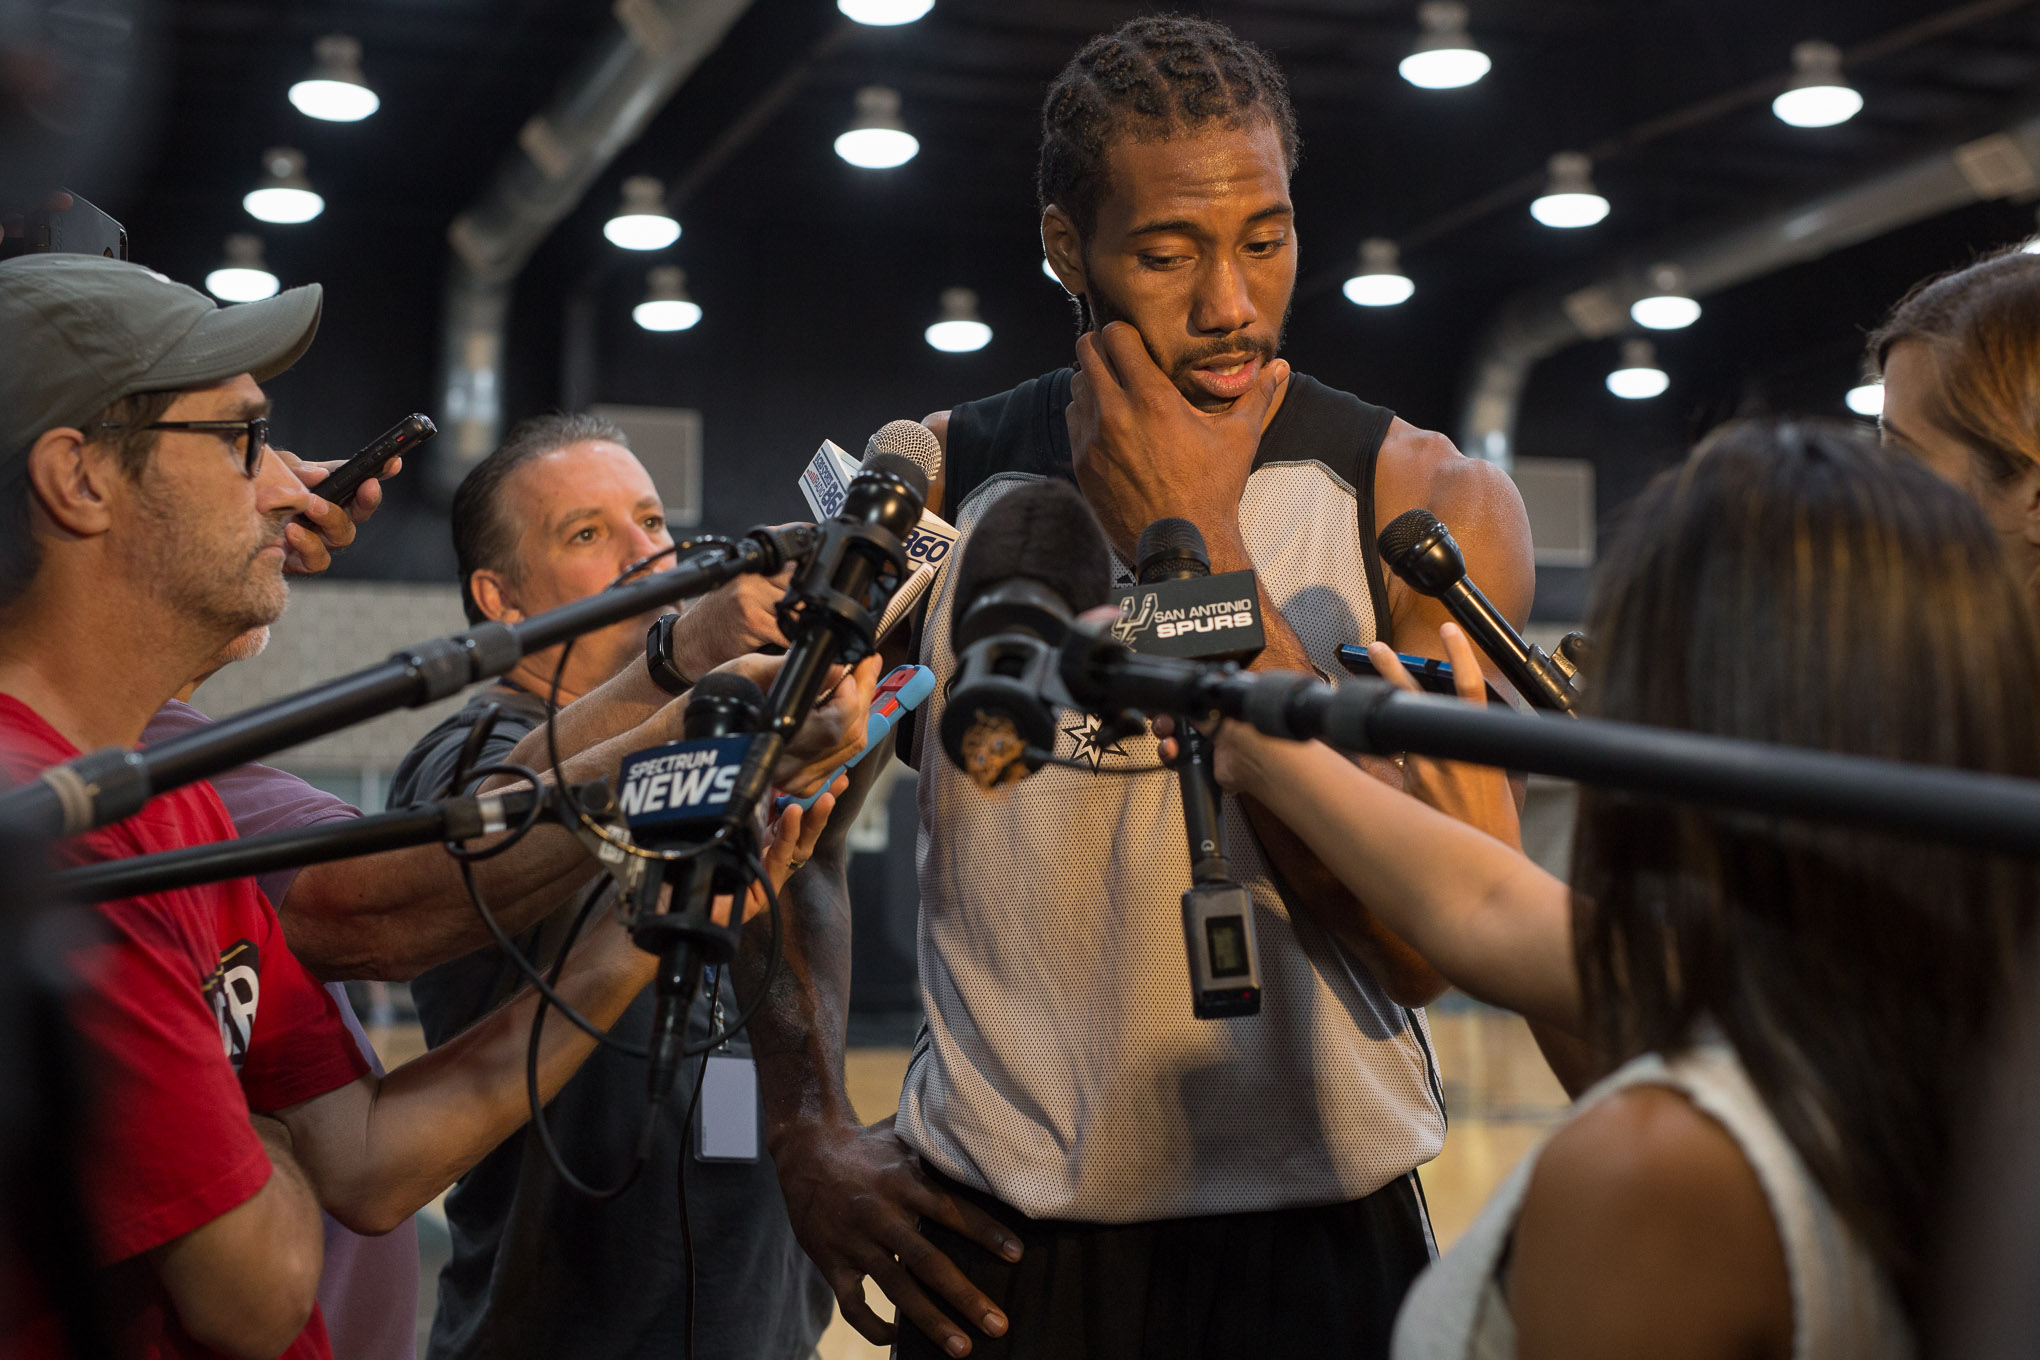 San Antonio Spurs Forward Kawhi Leonard responds to reporters question during the first day of practice on Tuesday Sept. 27, 2016. Photo by Scott Ball.